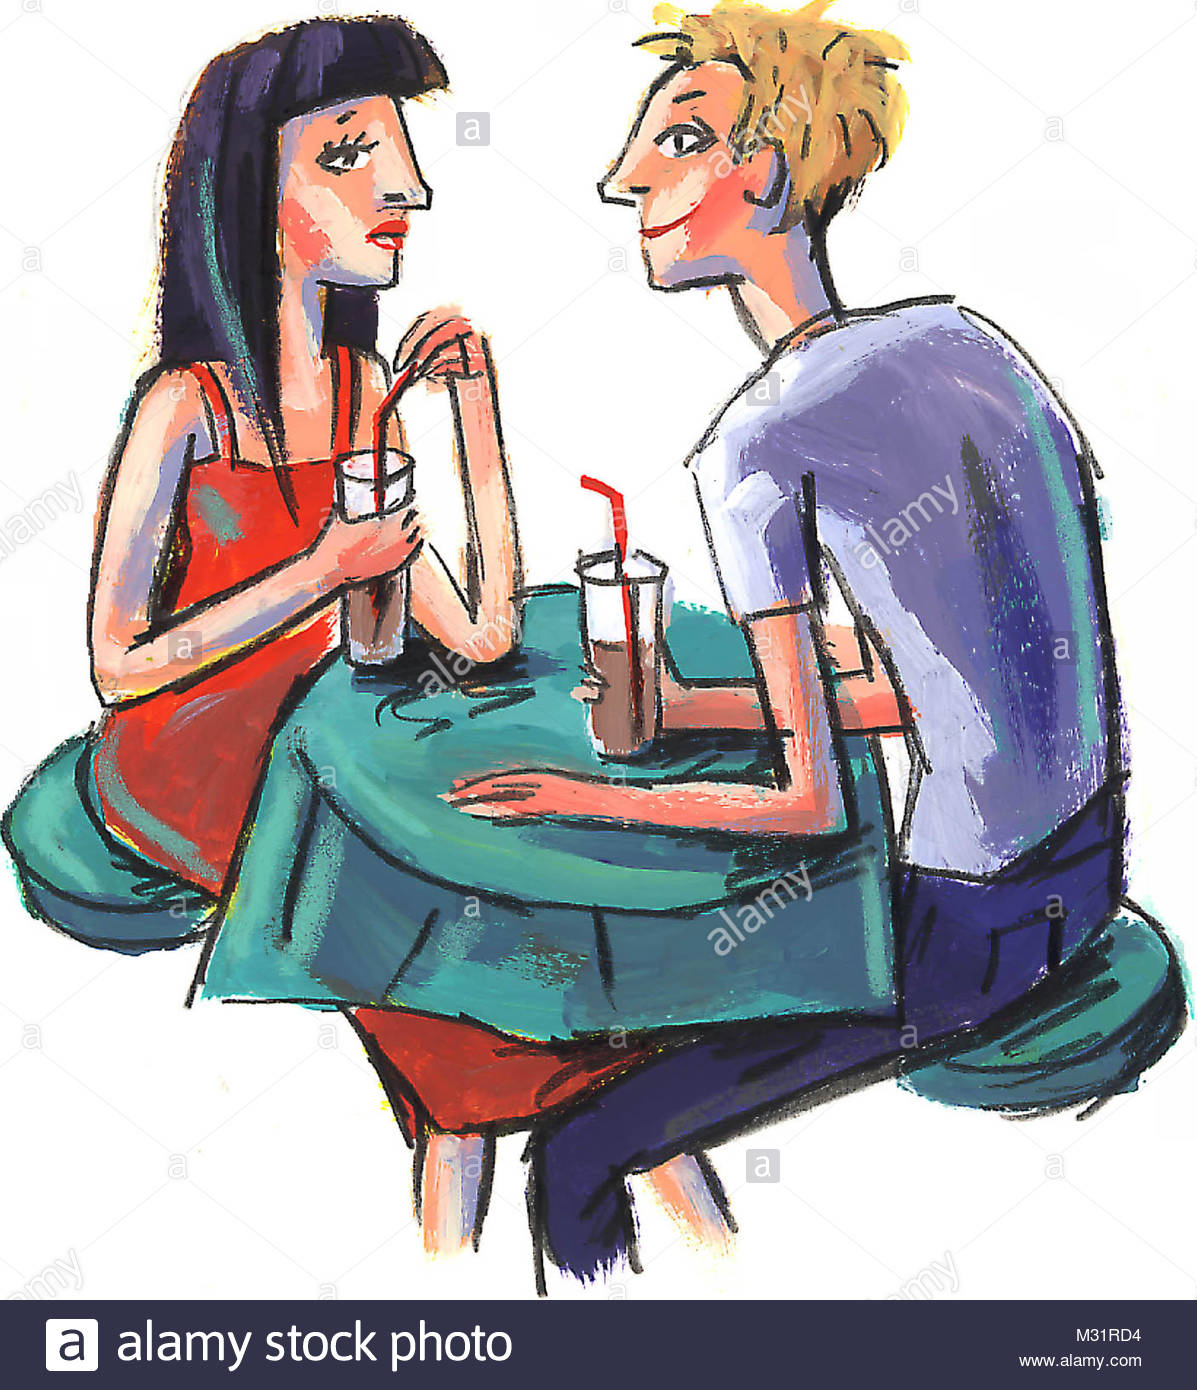 Couple at the table - Stock Image